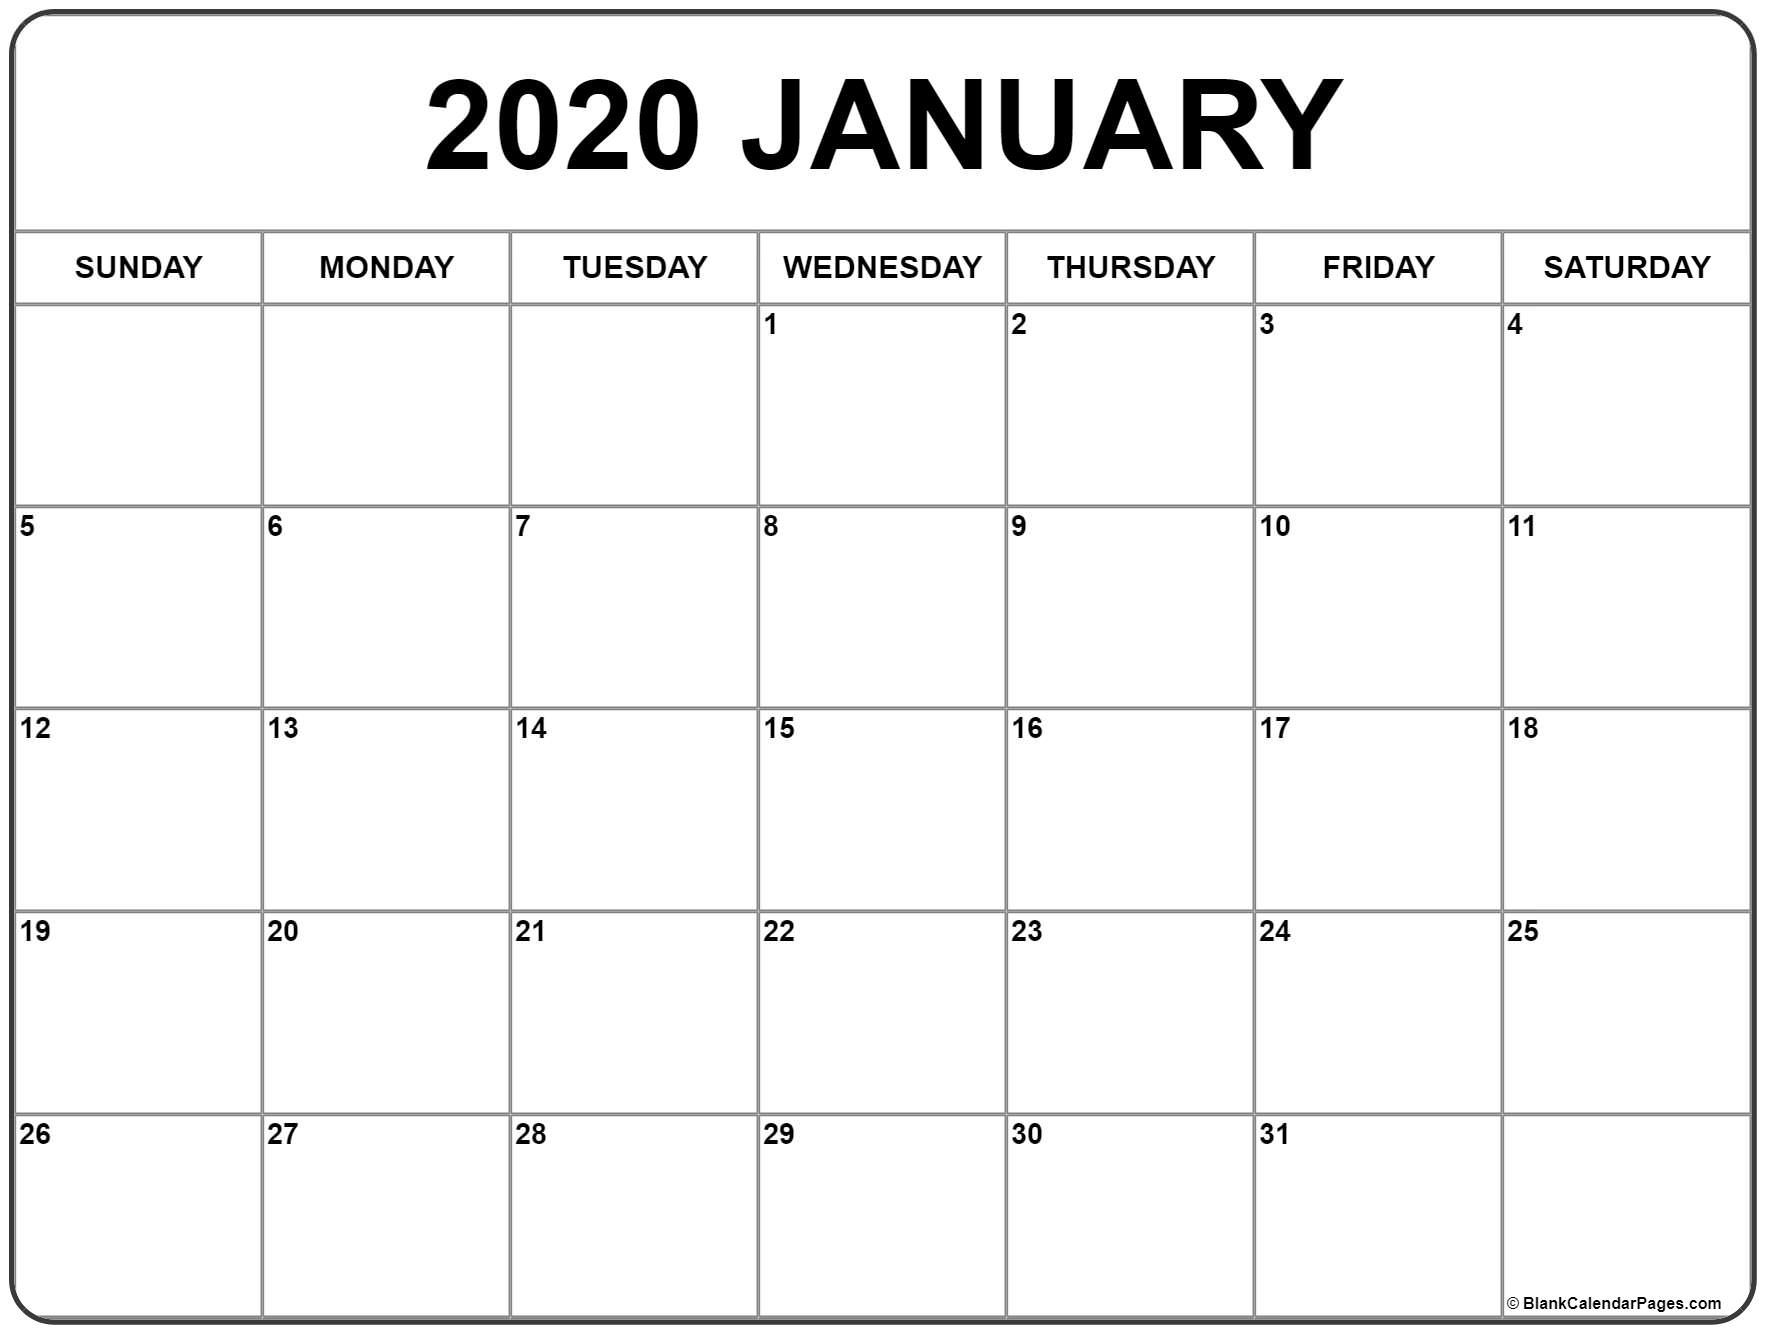 January 2020 Calendar | Free Printable Monthly Calendars for Blank Calander 2020 Fill In